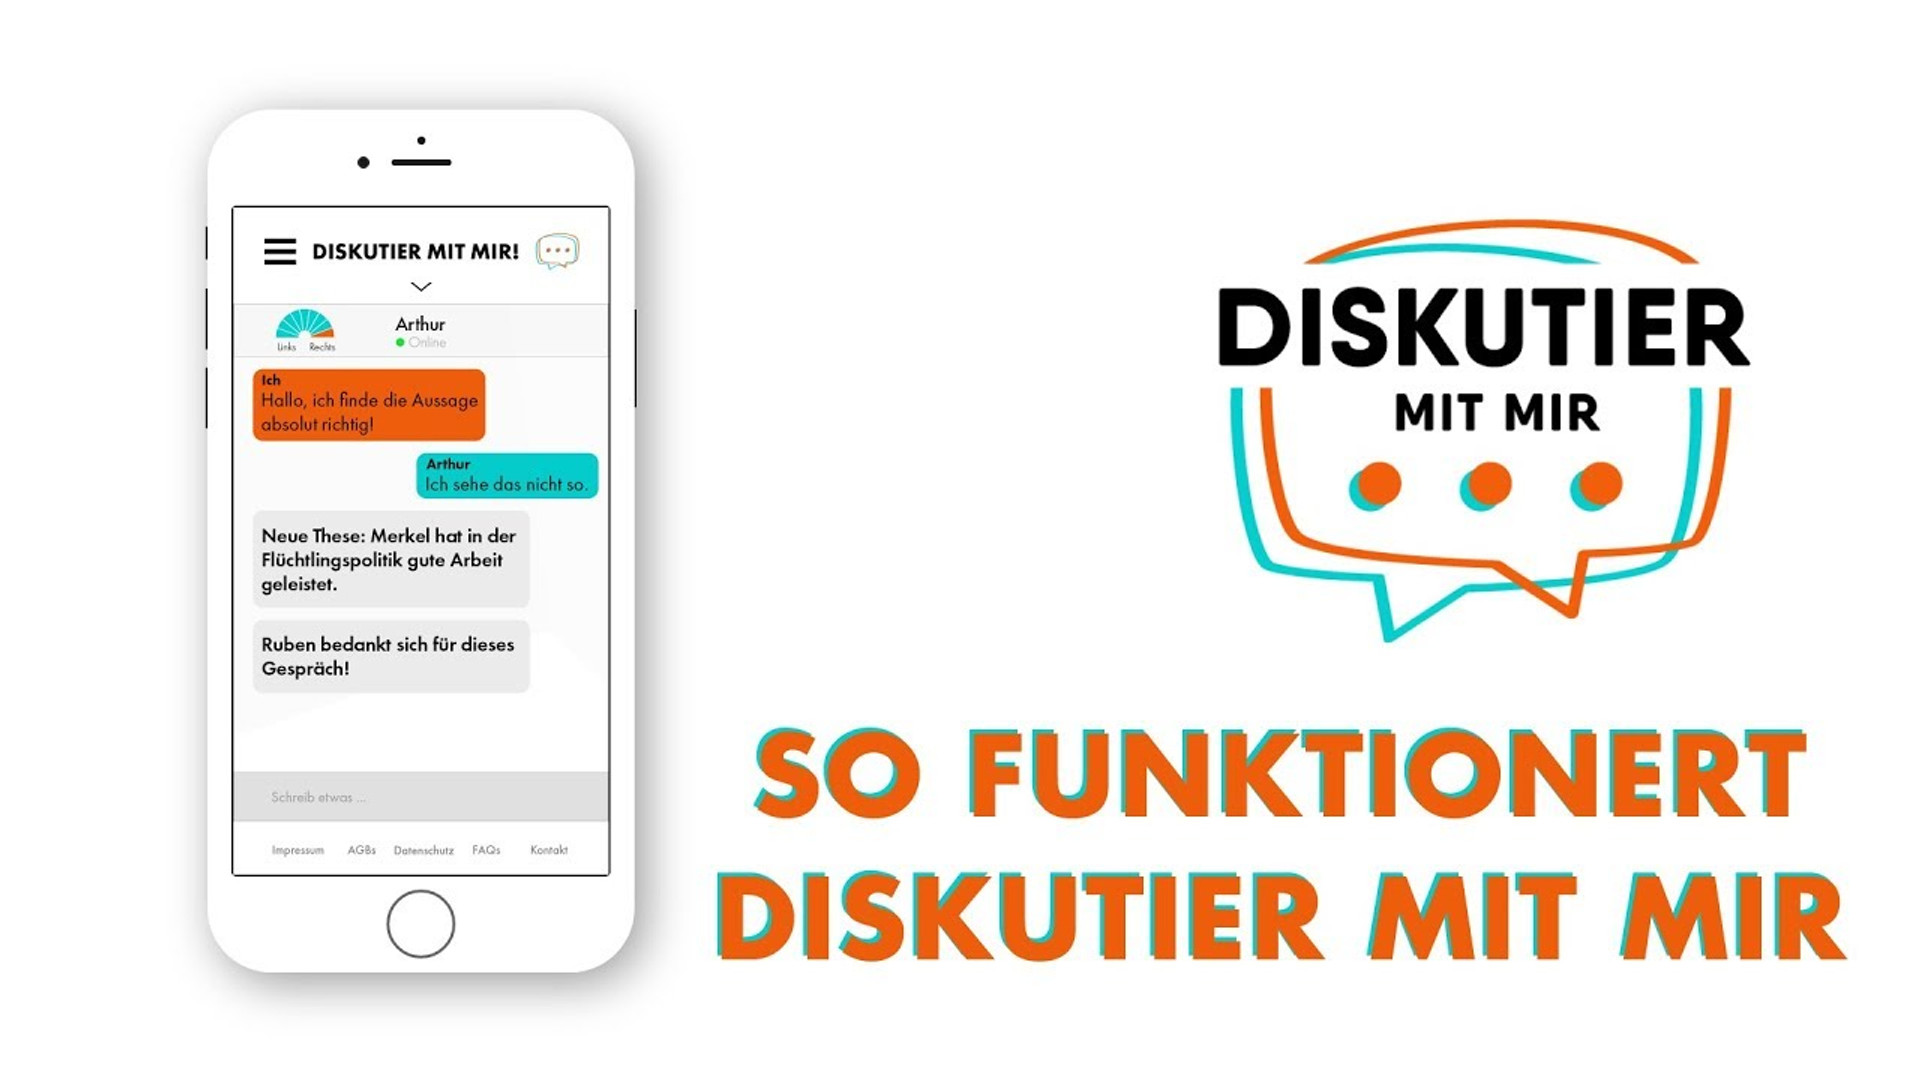 How-To Diskustier Mit Mir 2017